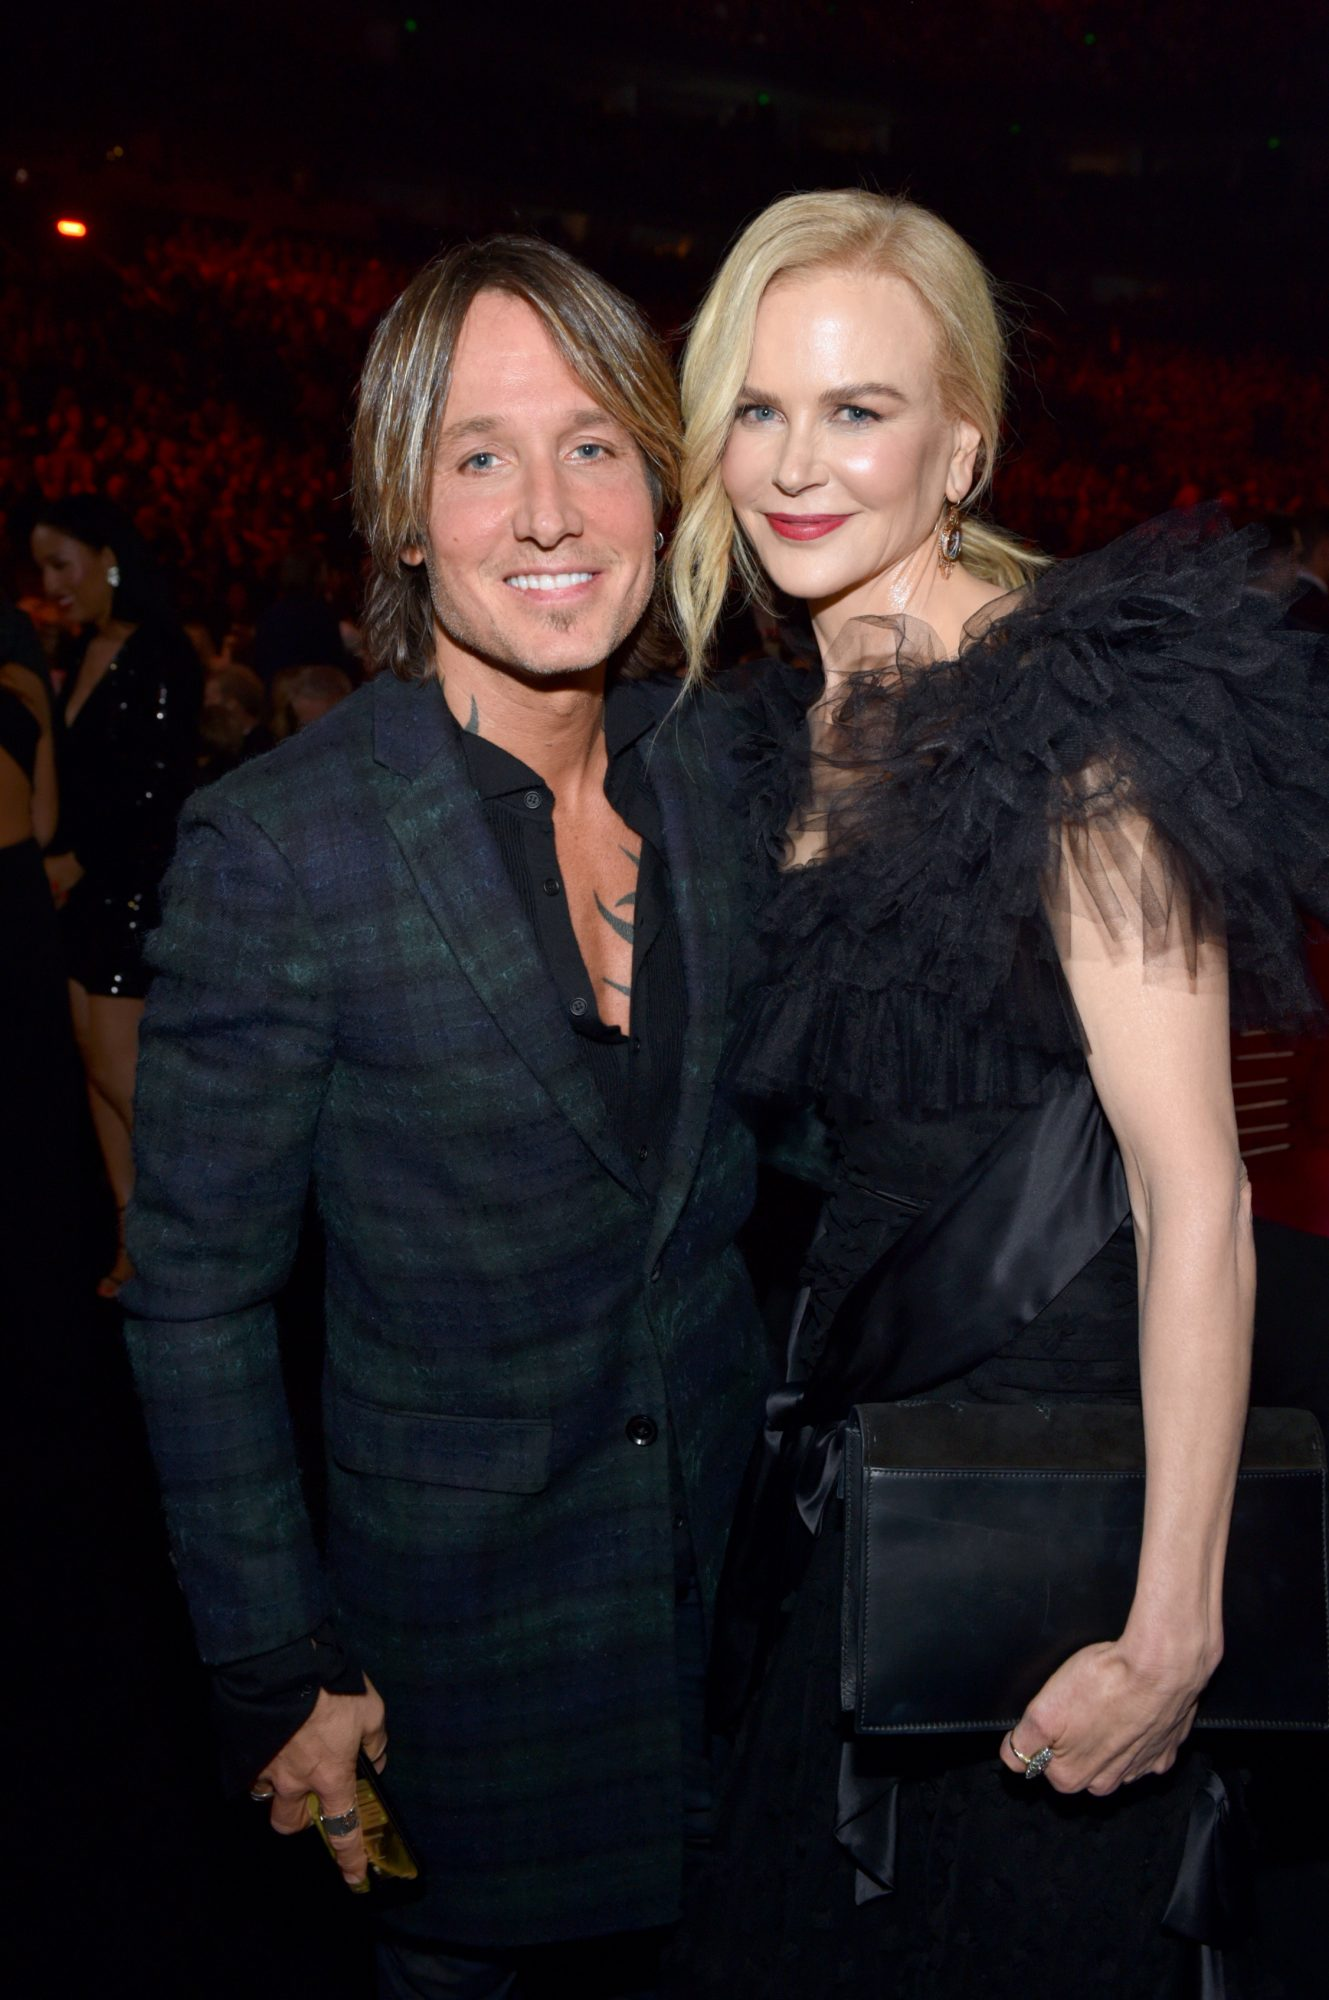 Nicole Kidman and Keith Urban Looked Like Newlyweds at the CMA Awards